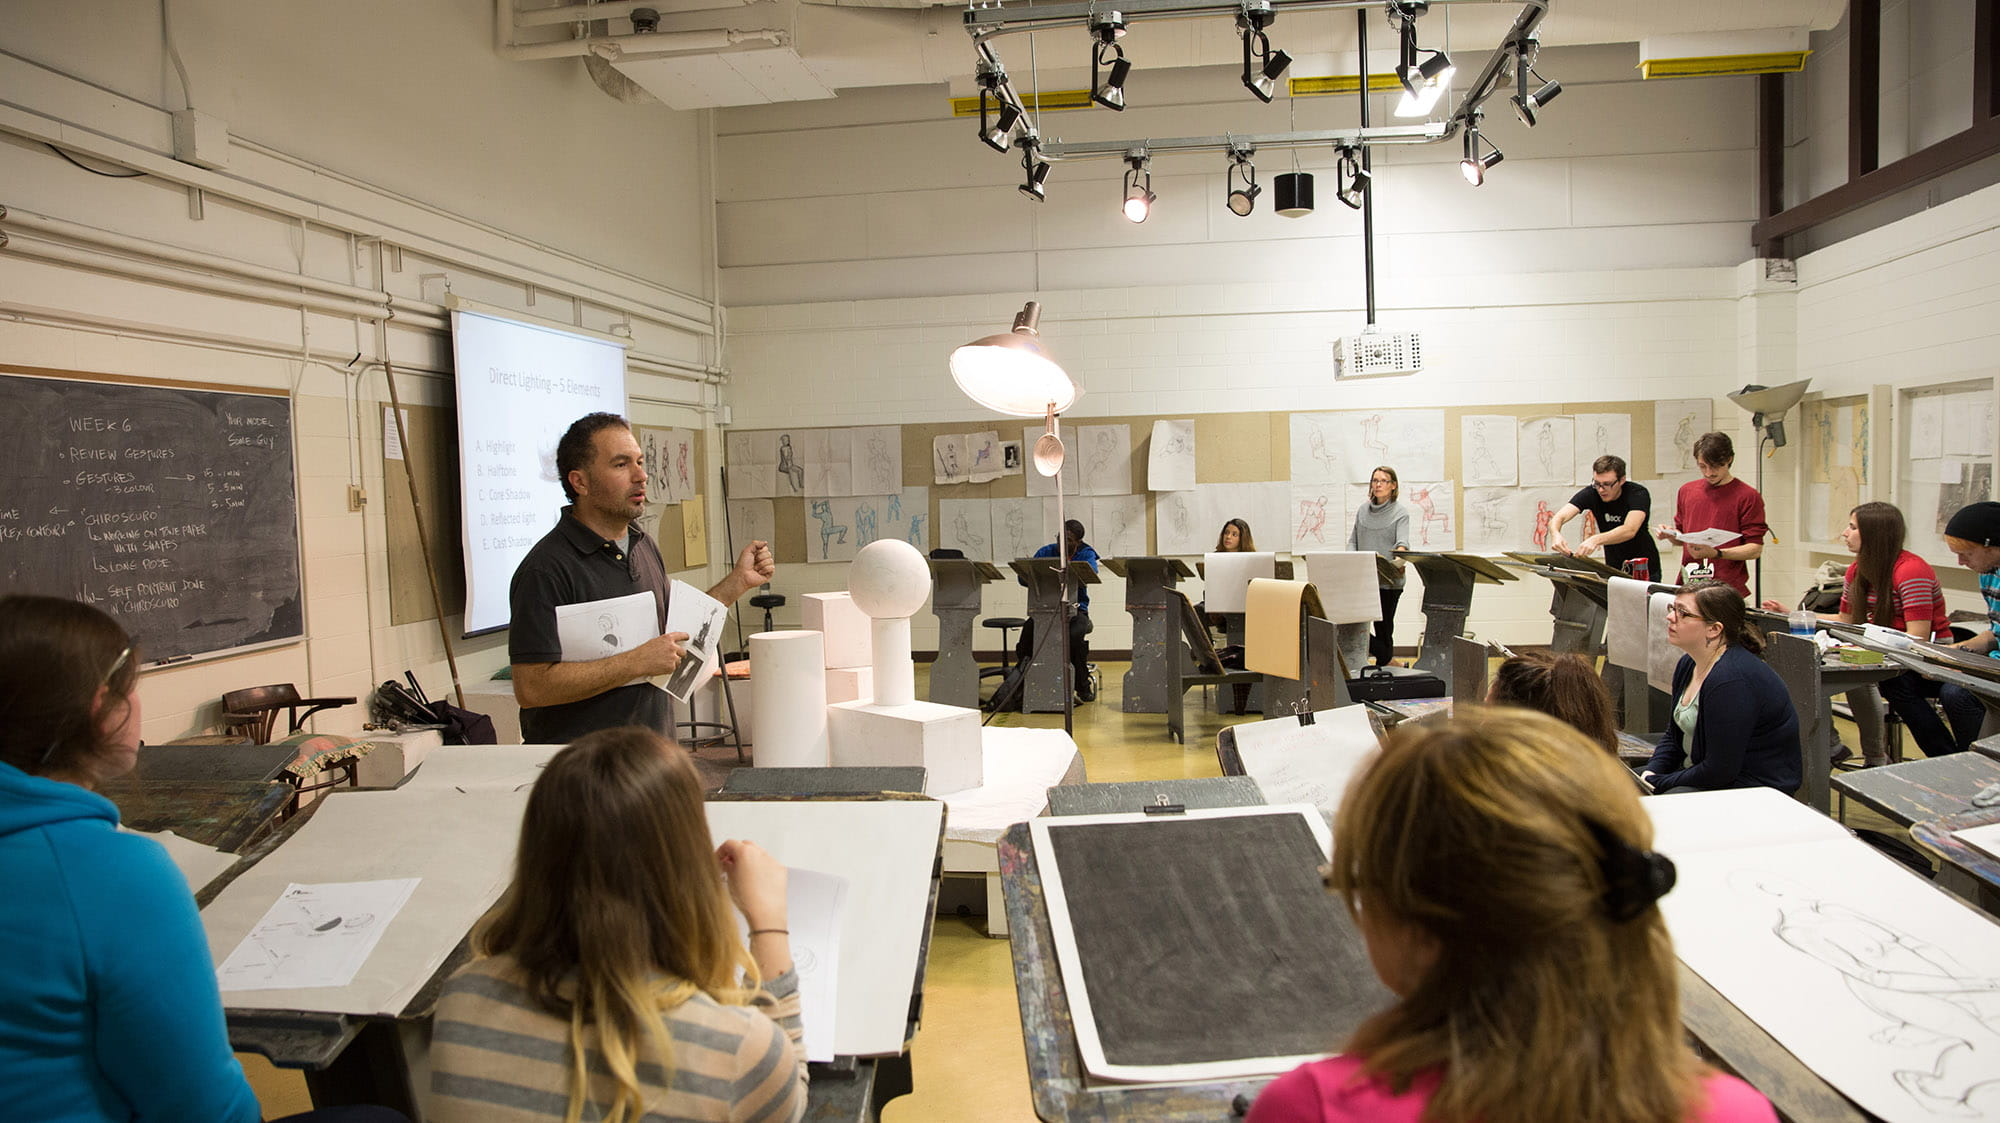 A studio filled with students working on large sheets of paper on easels